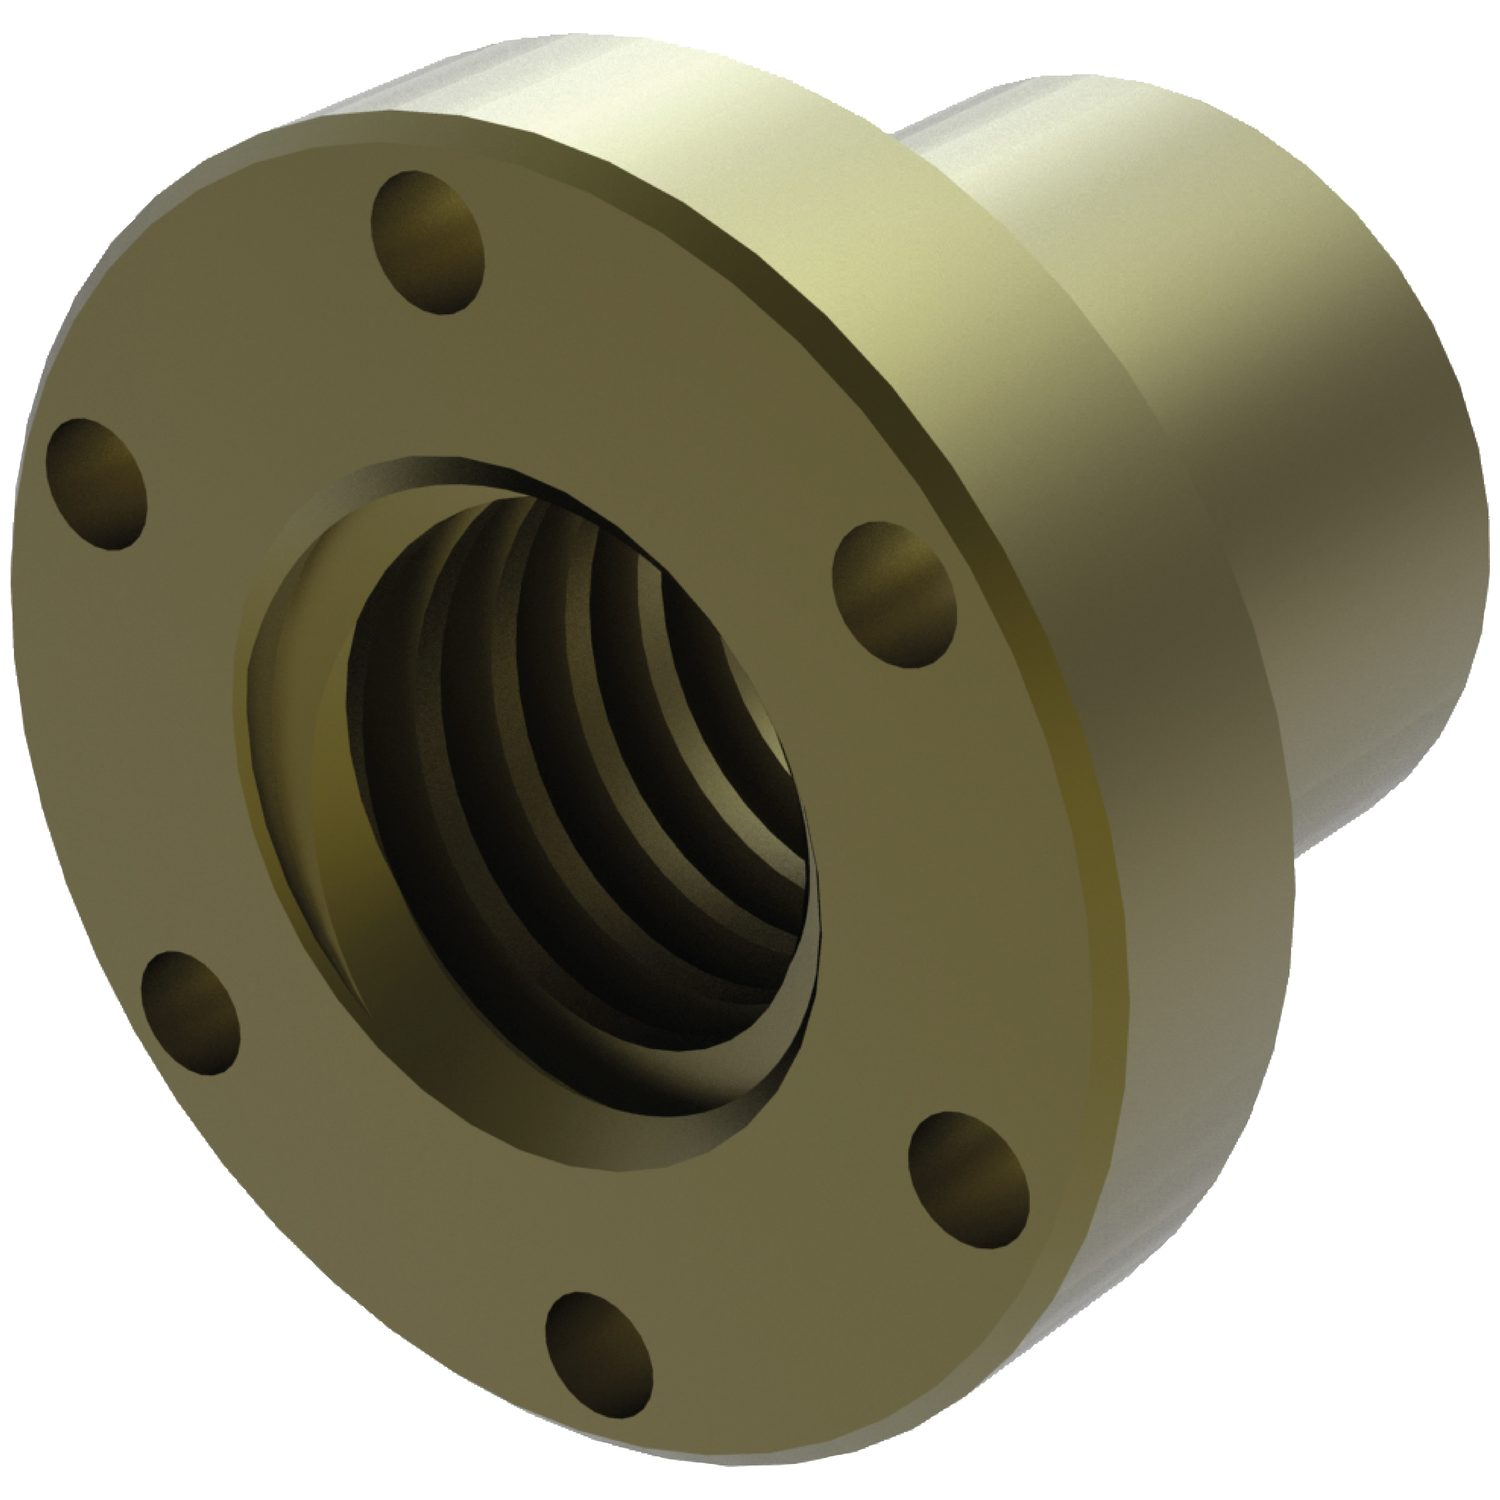 L1331 - Flanged Bronze Nuts